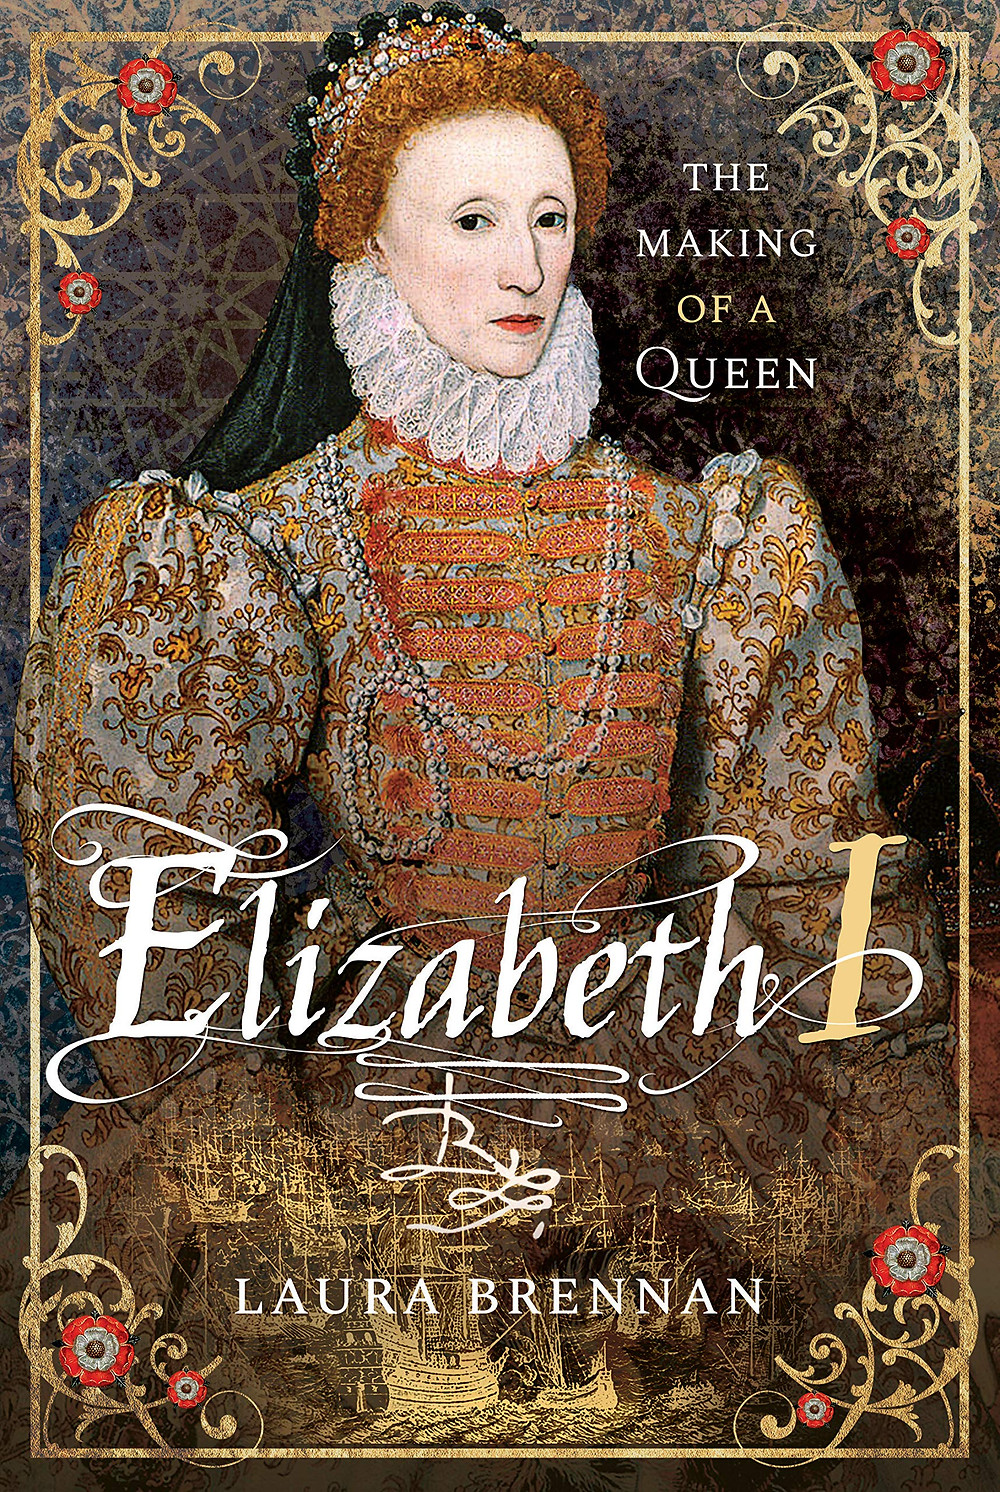 The Making of a Queen: Elizabeth I by Laura Brennan, book cover